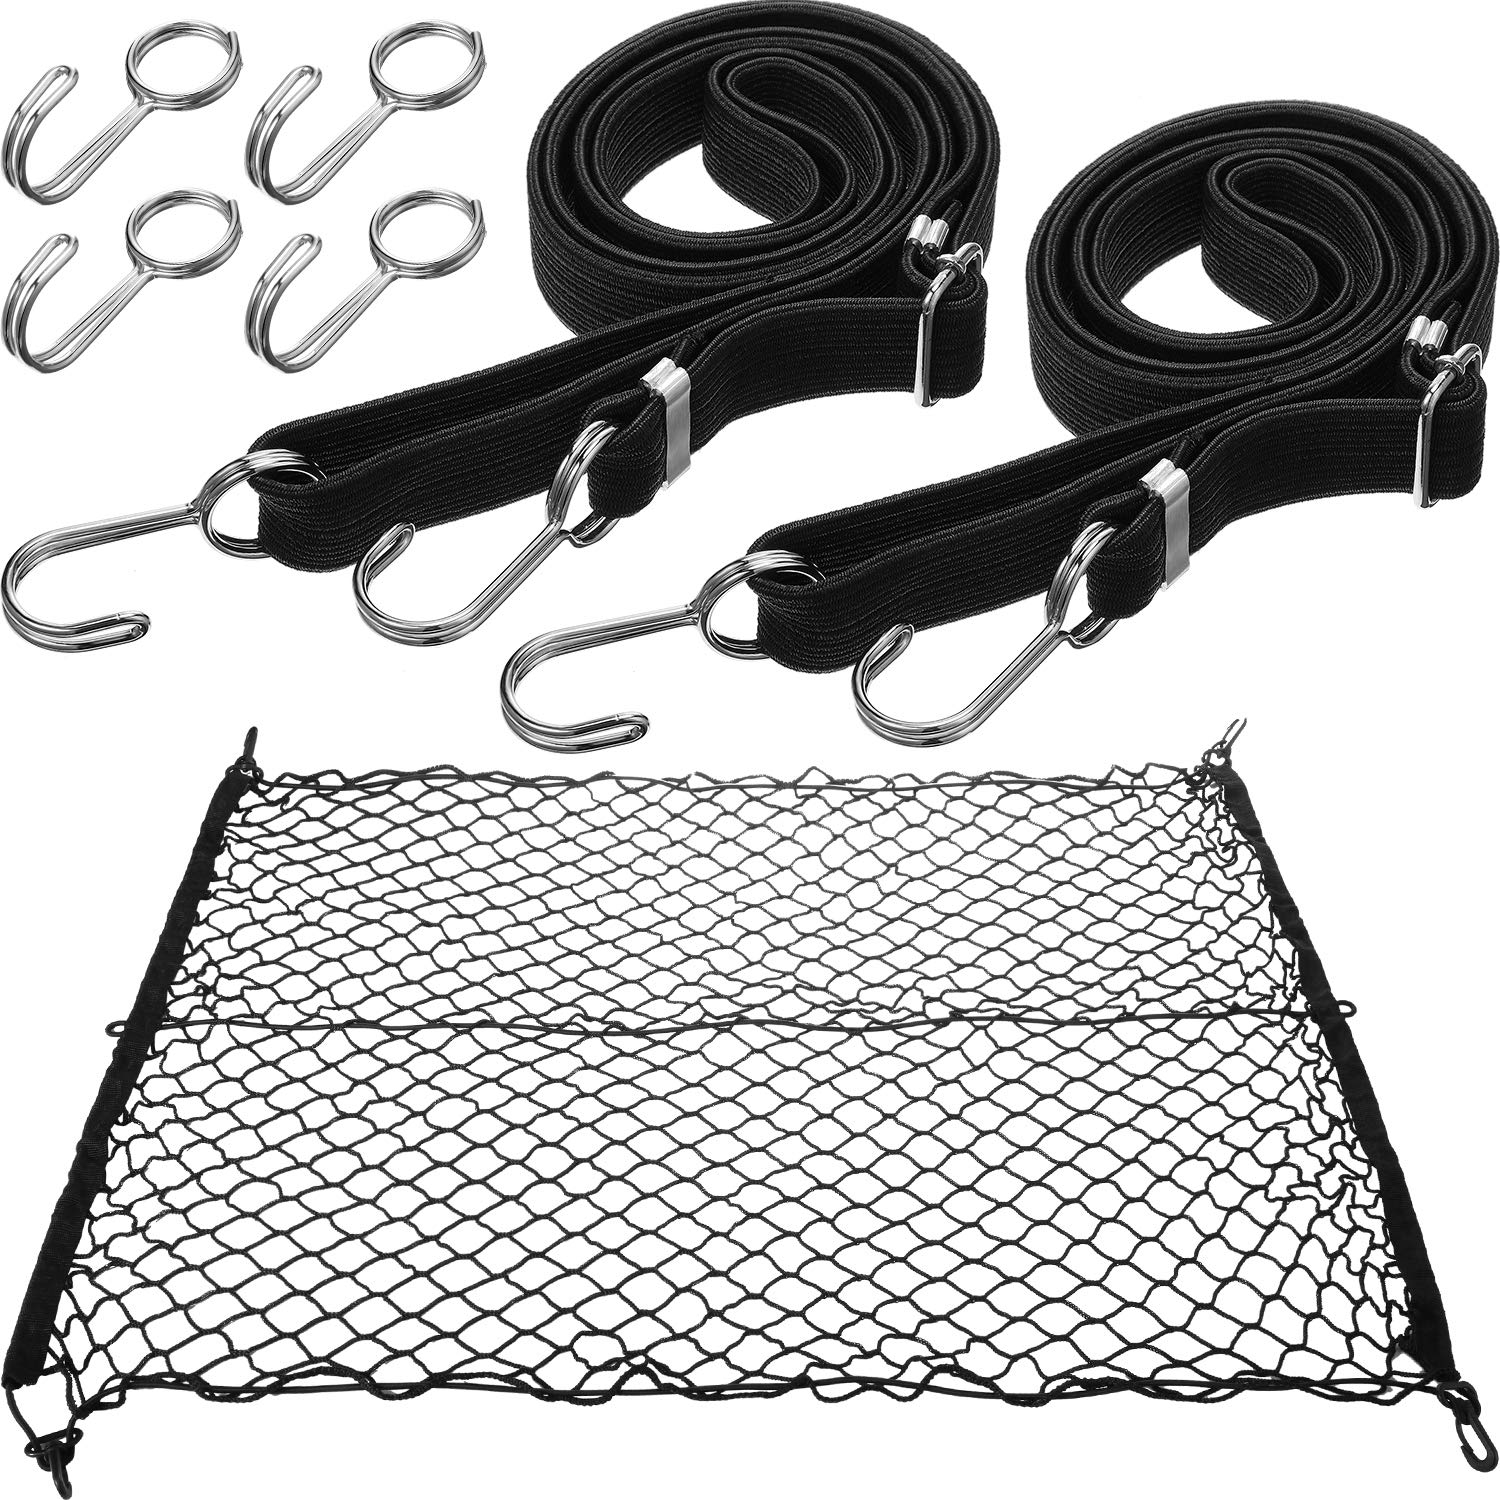 Boao Folding Outdoor Wagon Cargo Net with 2 Pieces Collapsible Utility Wagon Straps 4 Pieces Adjustable Hooks by Boao